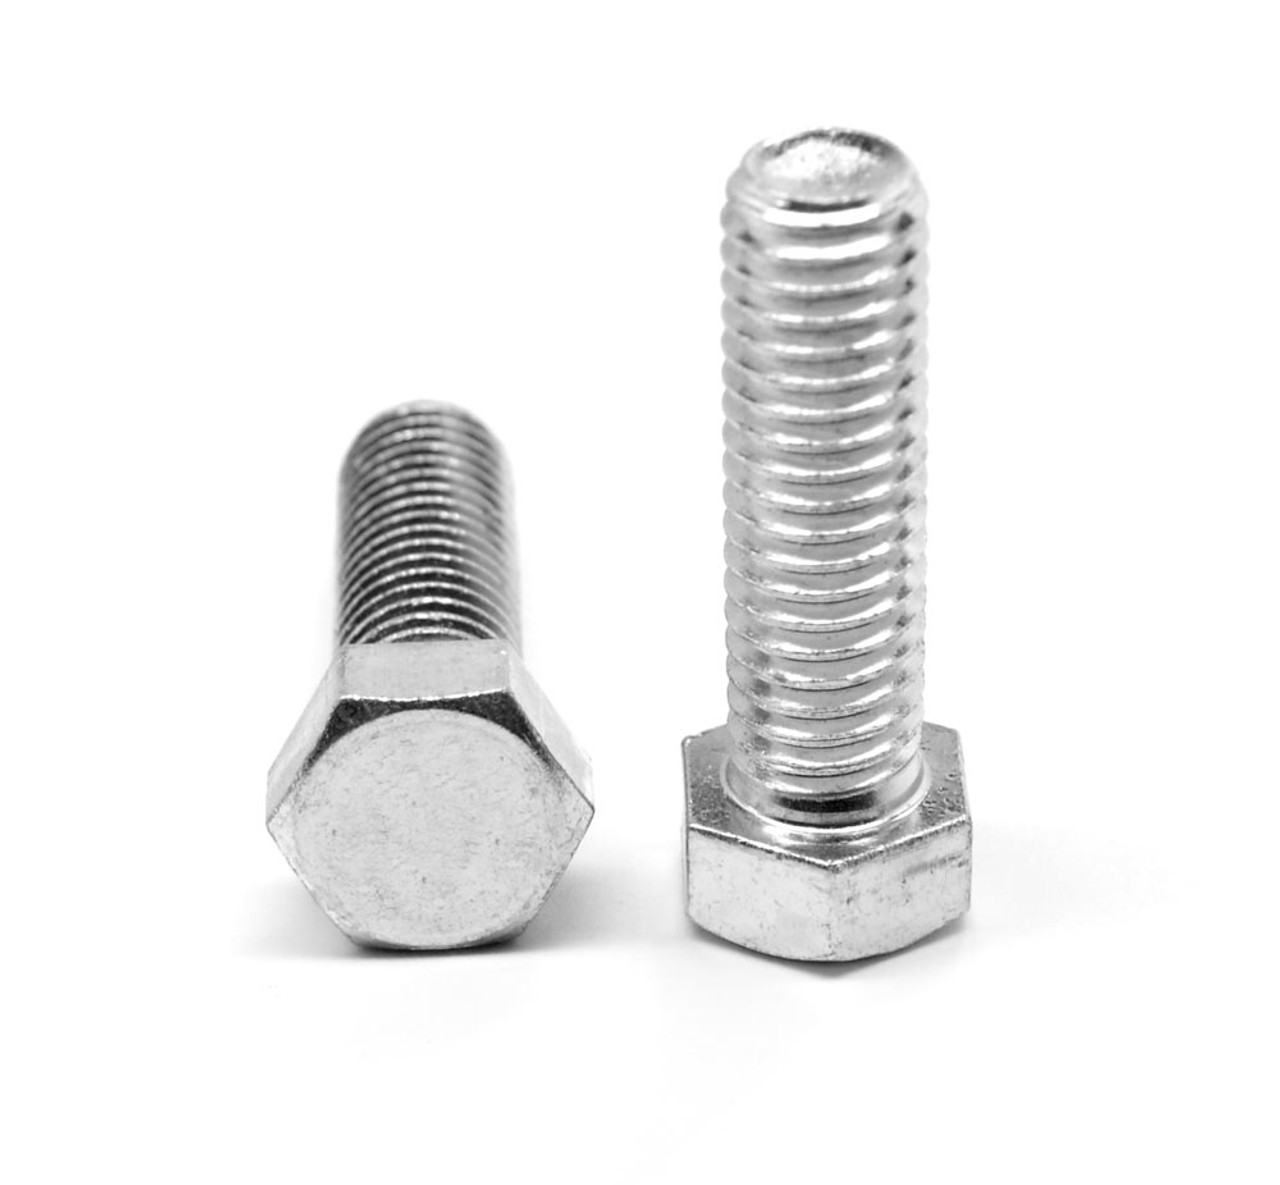 a2 DIN 933 m6 x 14 Hex Screw ISO 4017 threaded up Head Stainless Steel